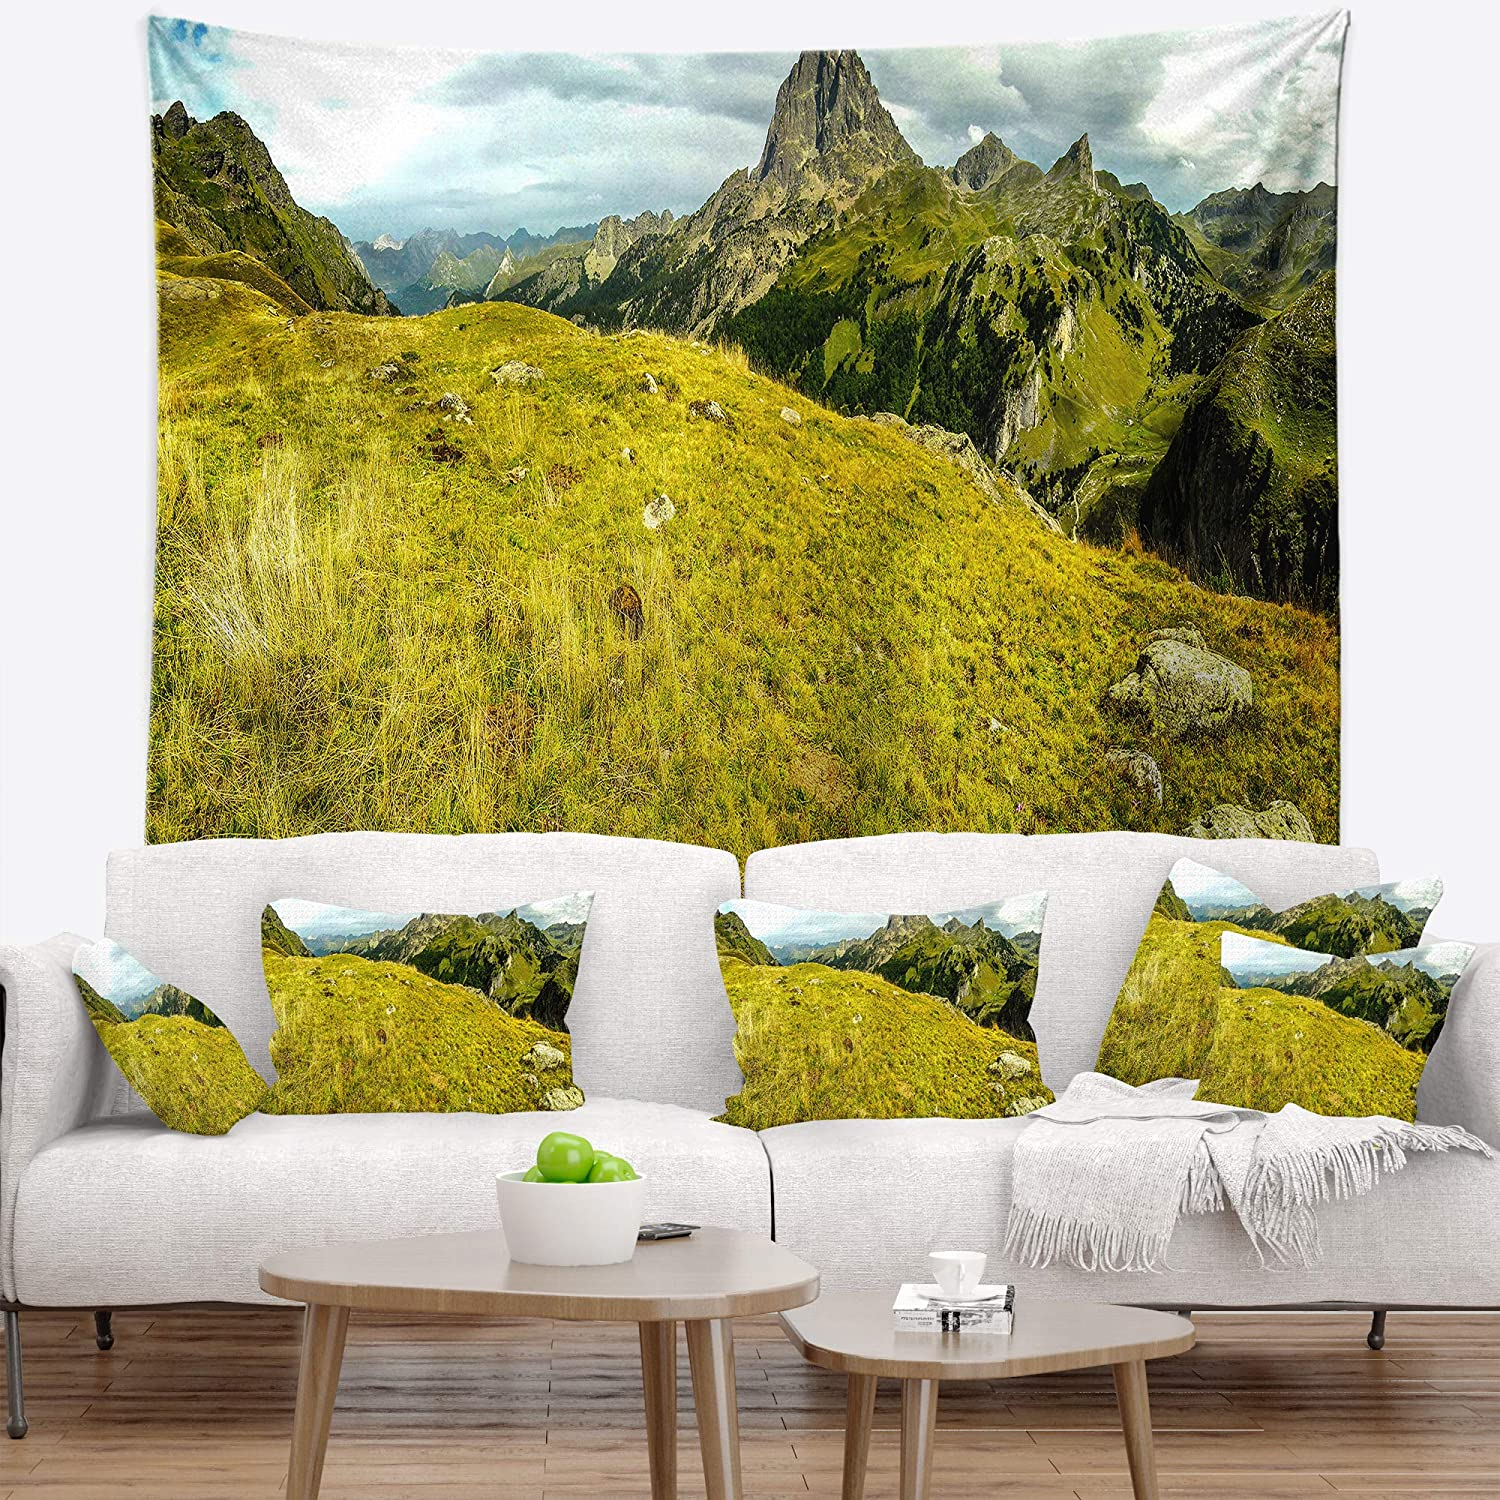 Created On Lightweight Polyester Fabric 60 in Designart TAP15164-60-50  Bright Green Mountain Panorama Landscape Blanket D/écor Art for Home and Office Wall Tapestry Large x 50 in